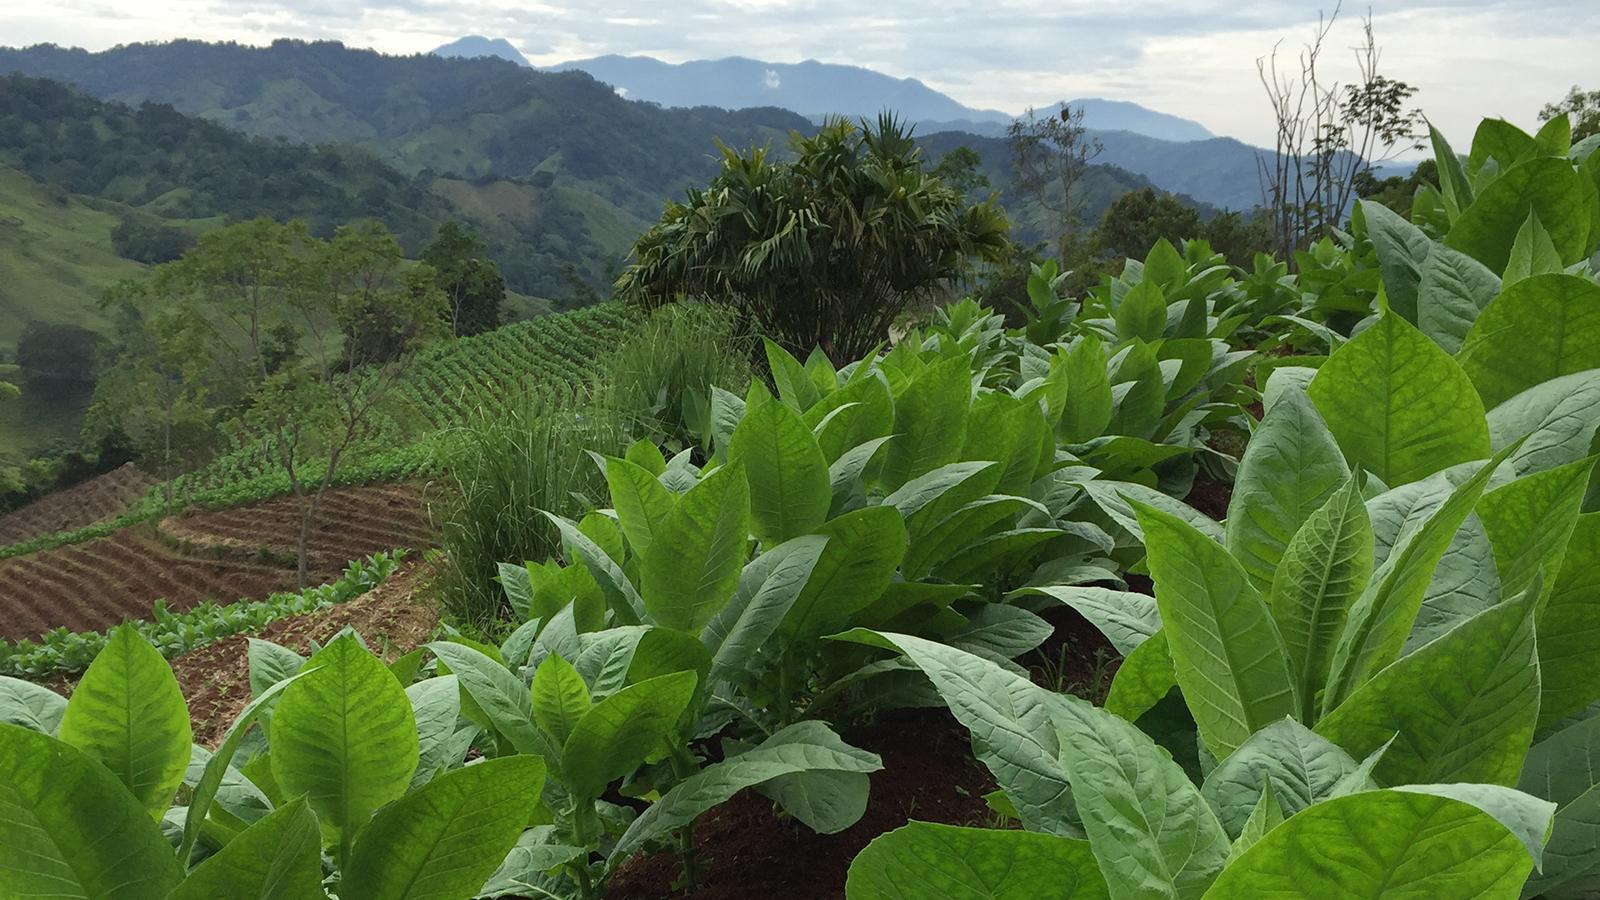 Philip Wynn Grows Bumper Crop In Costa Rica